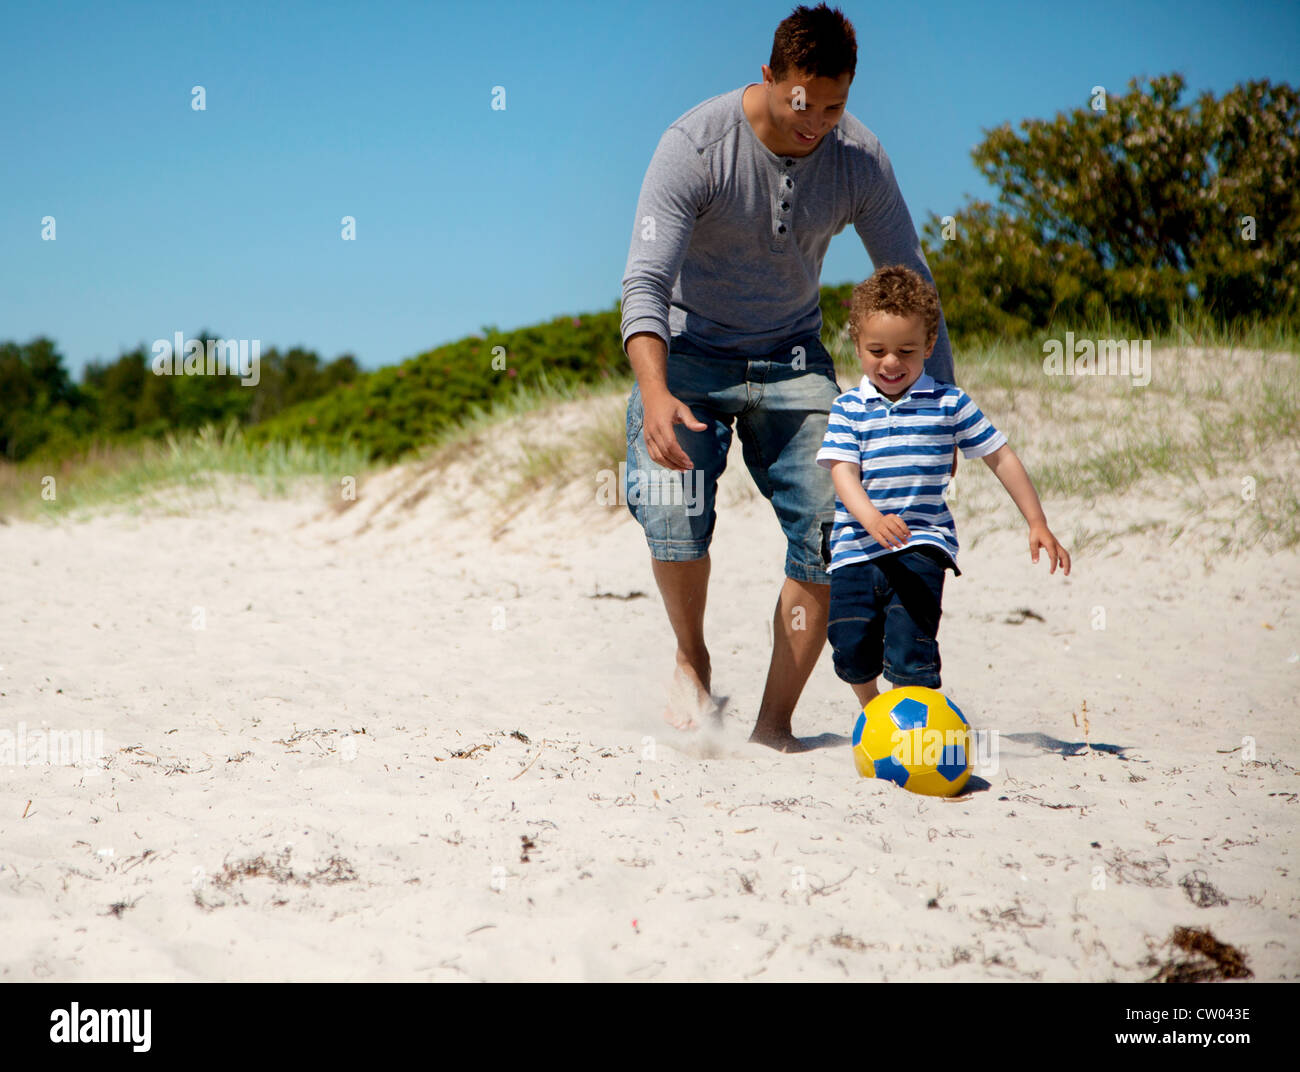 Father and son enjoying a soccer game on the beach - Stock Image